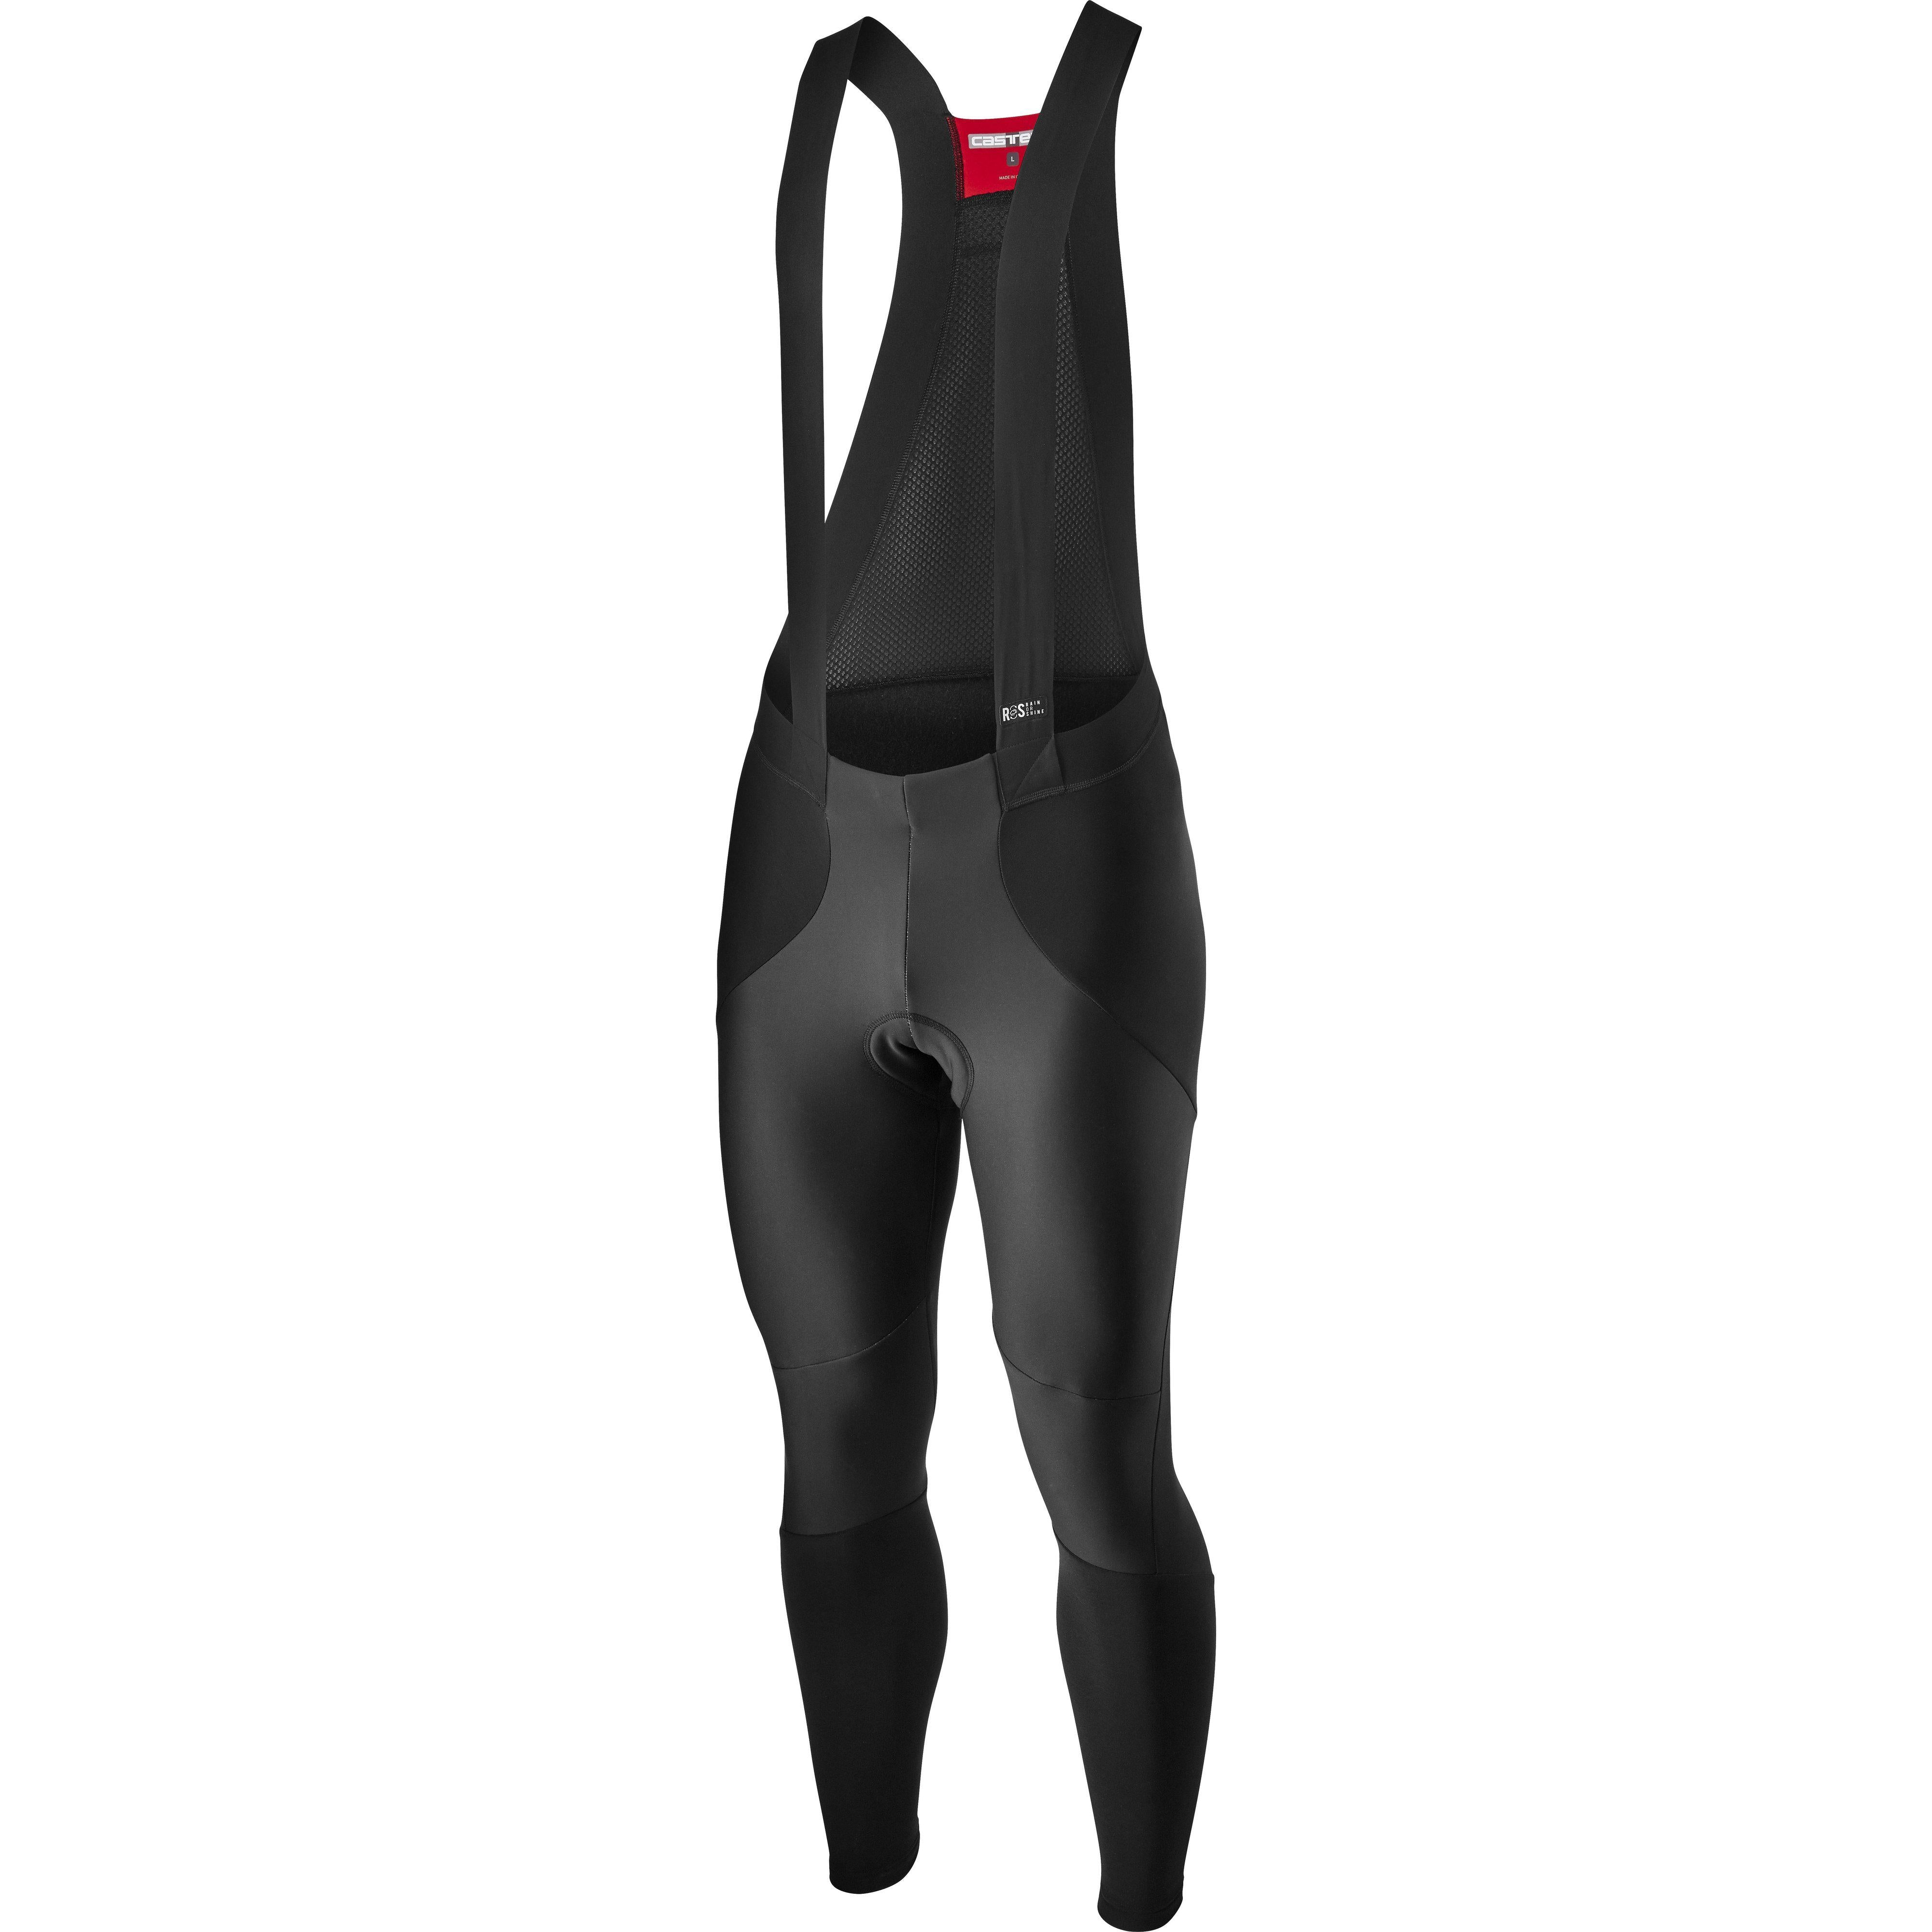 Castelli-Castelli Sorpasso RoS Wind Bibtights-Black-S-CS205250102-saddleback-elite-performance-cycling